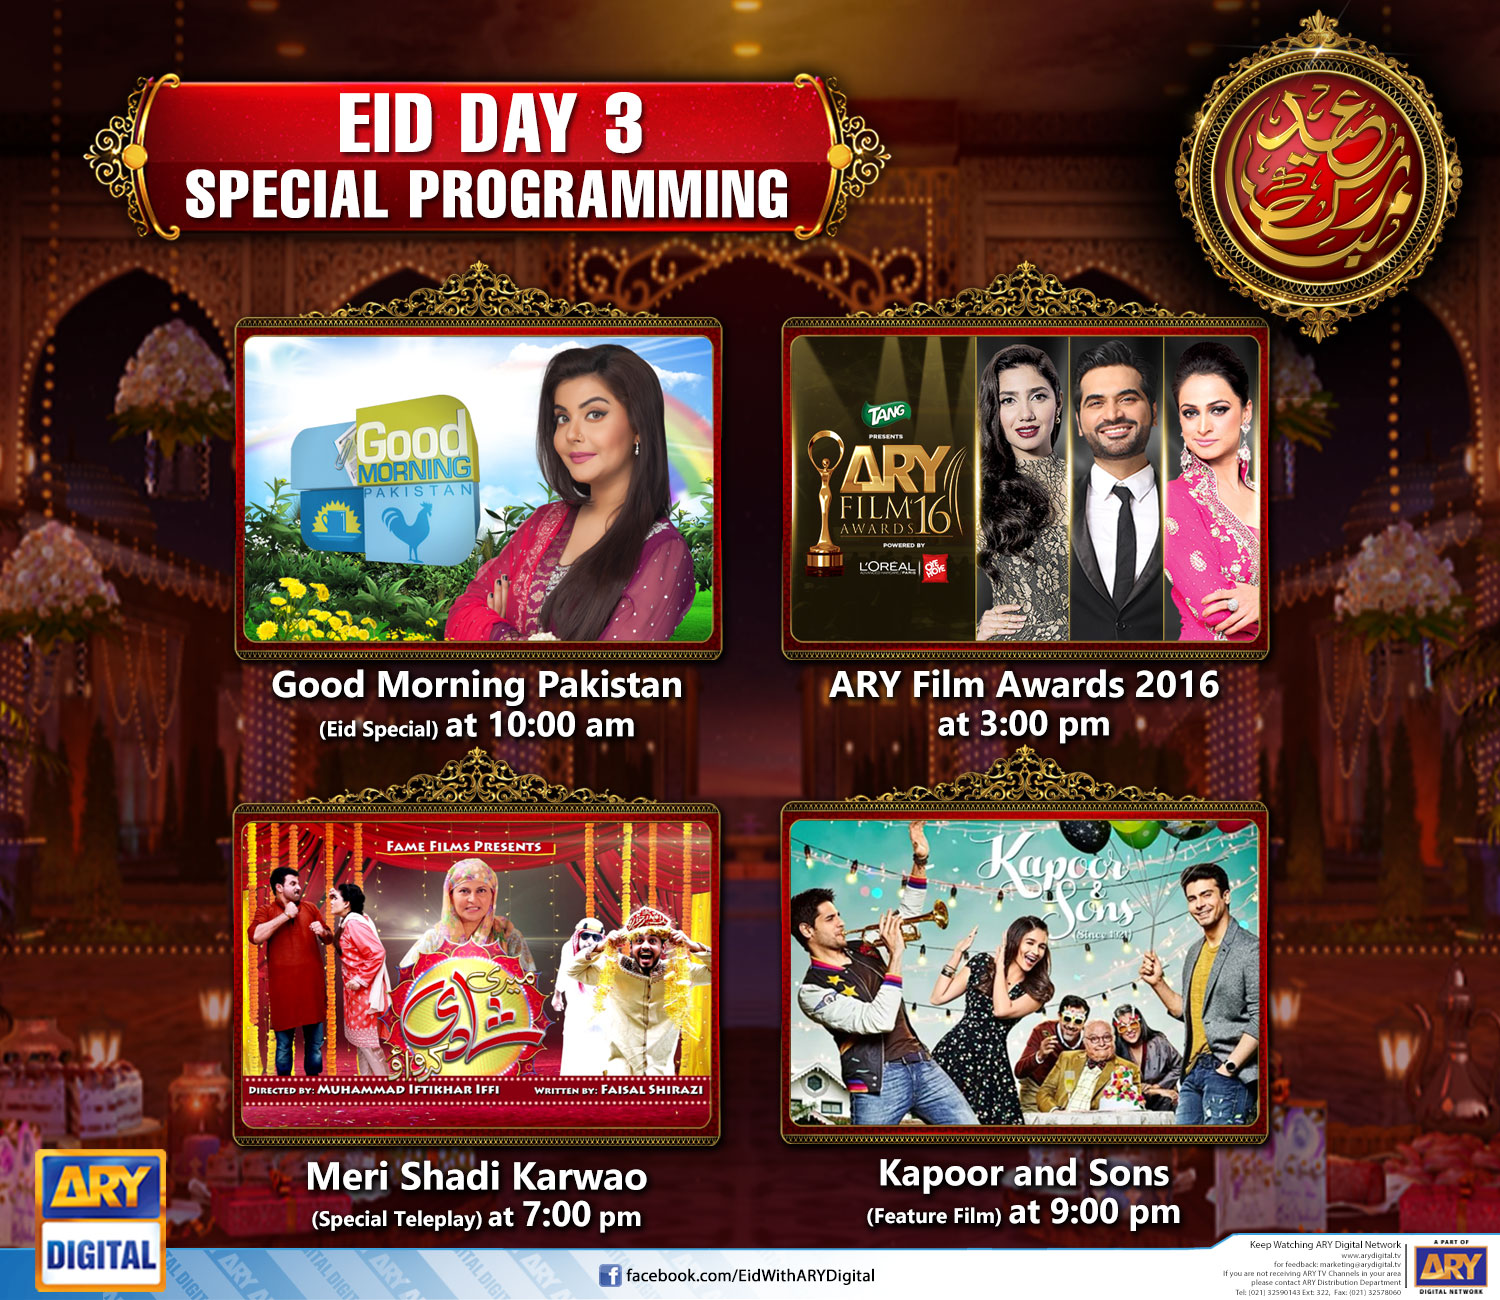 [Press Release] ARY Digital and ARY Zindagi brings exciting programs for Eid 2016 (3)